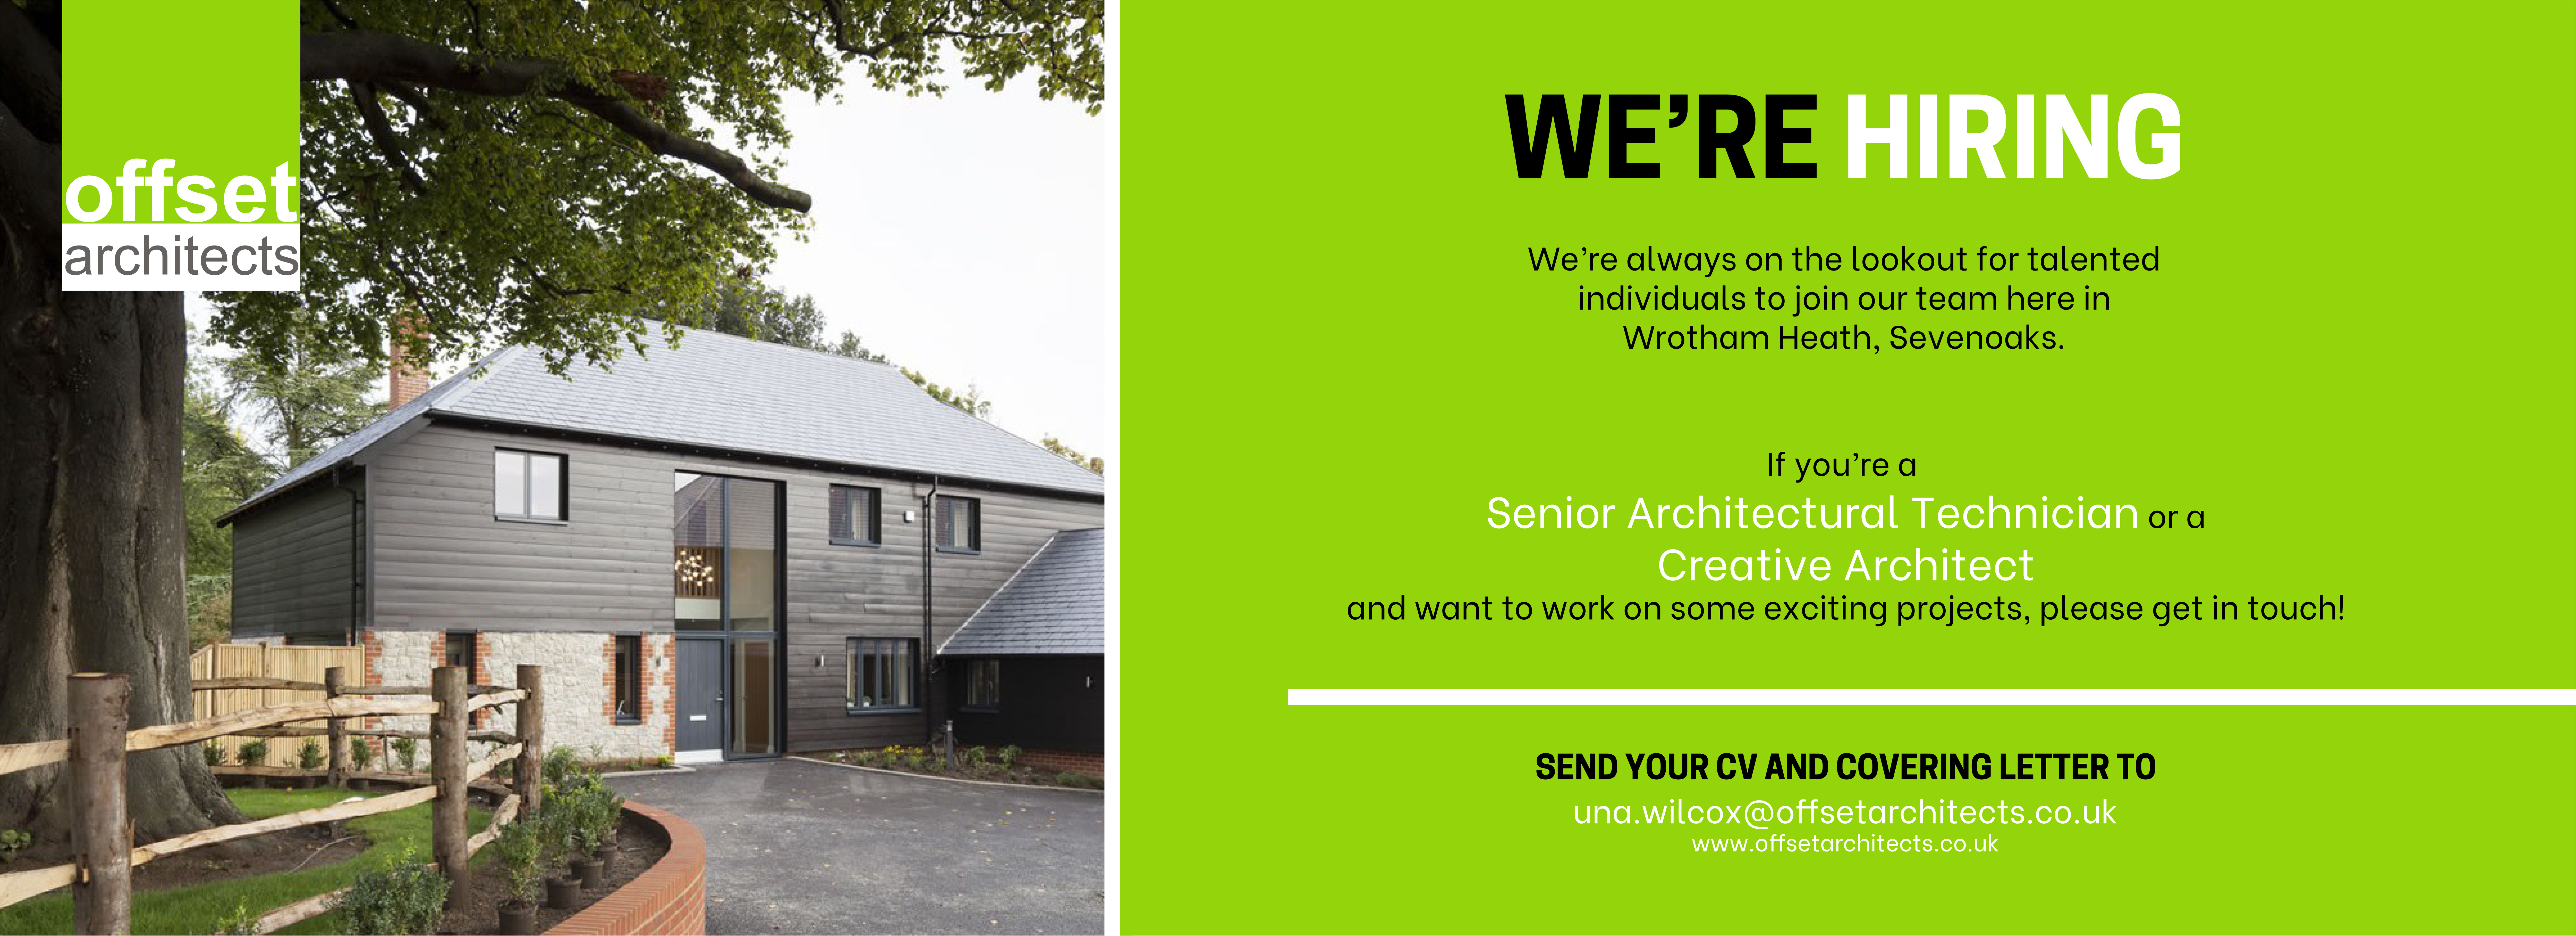 Offset Architects - The Team